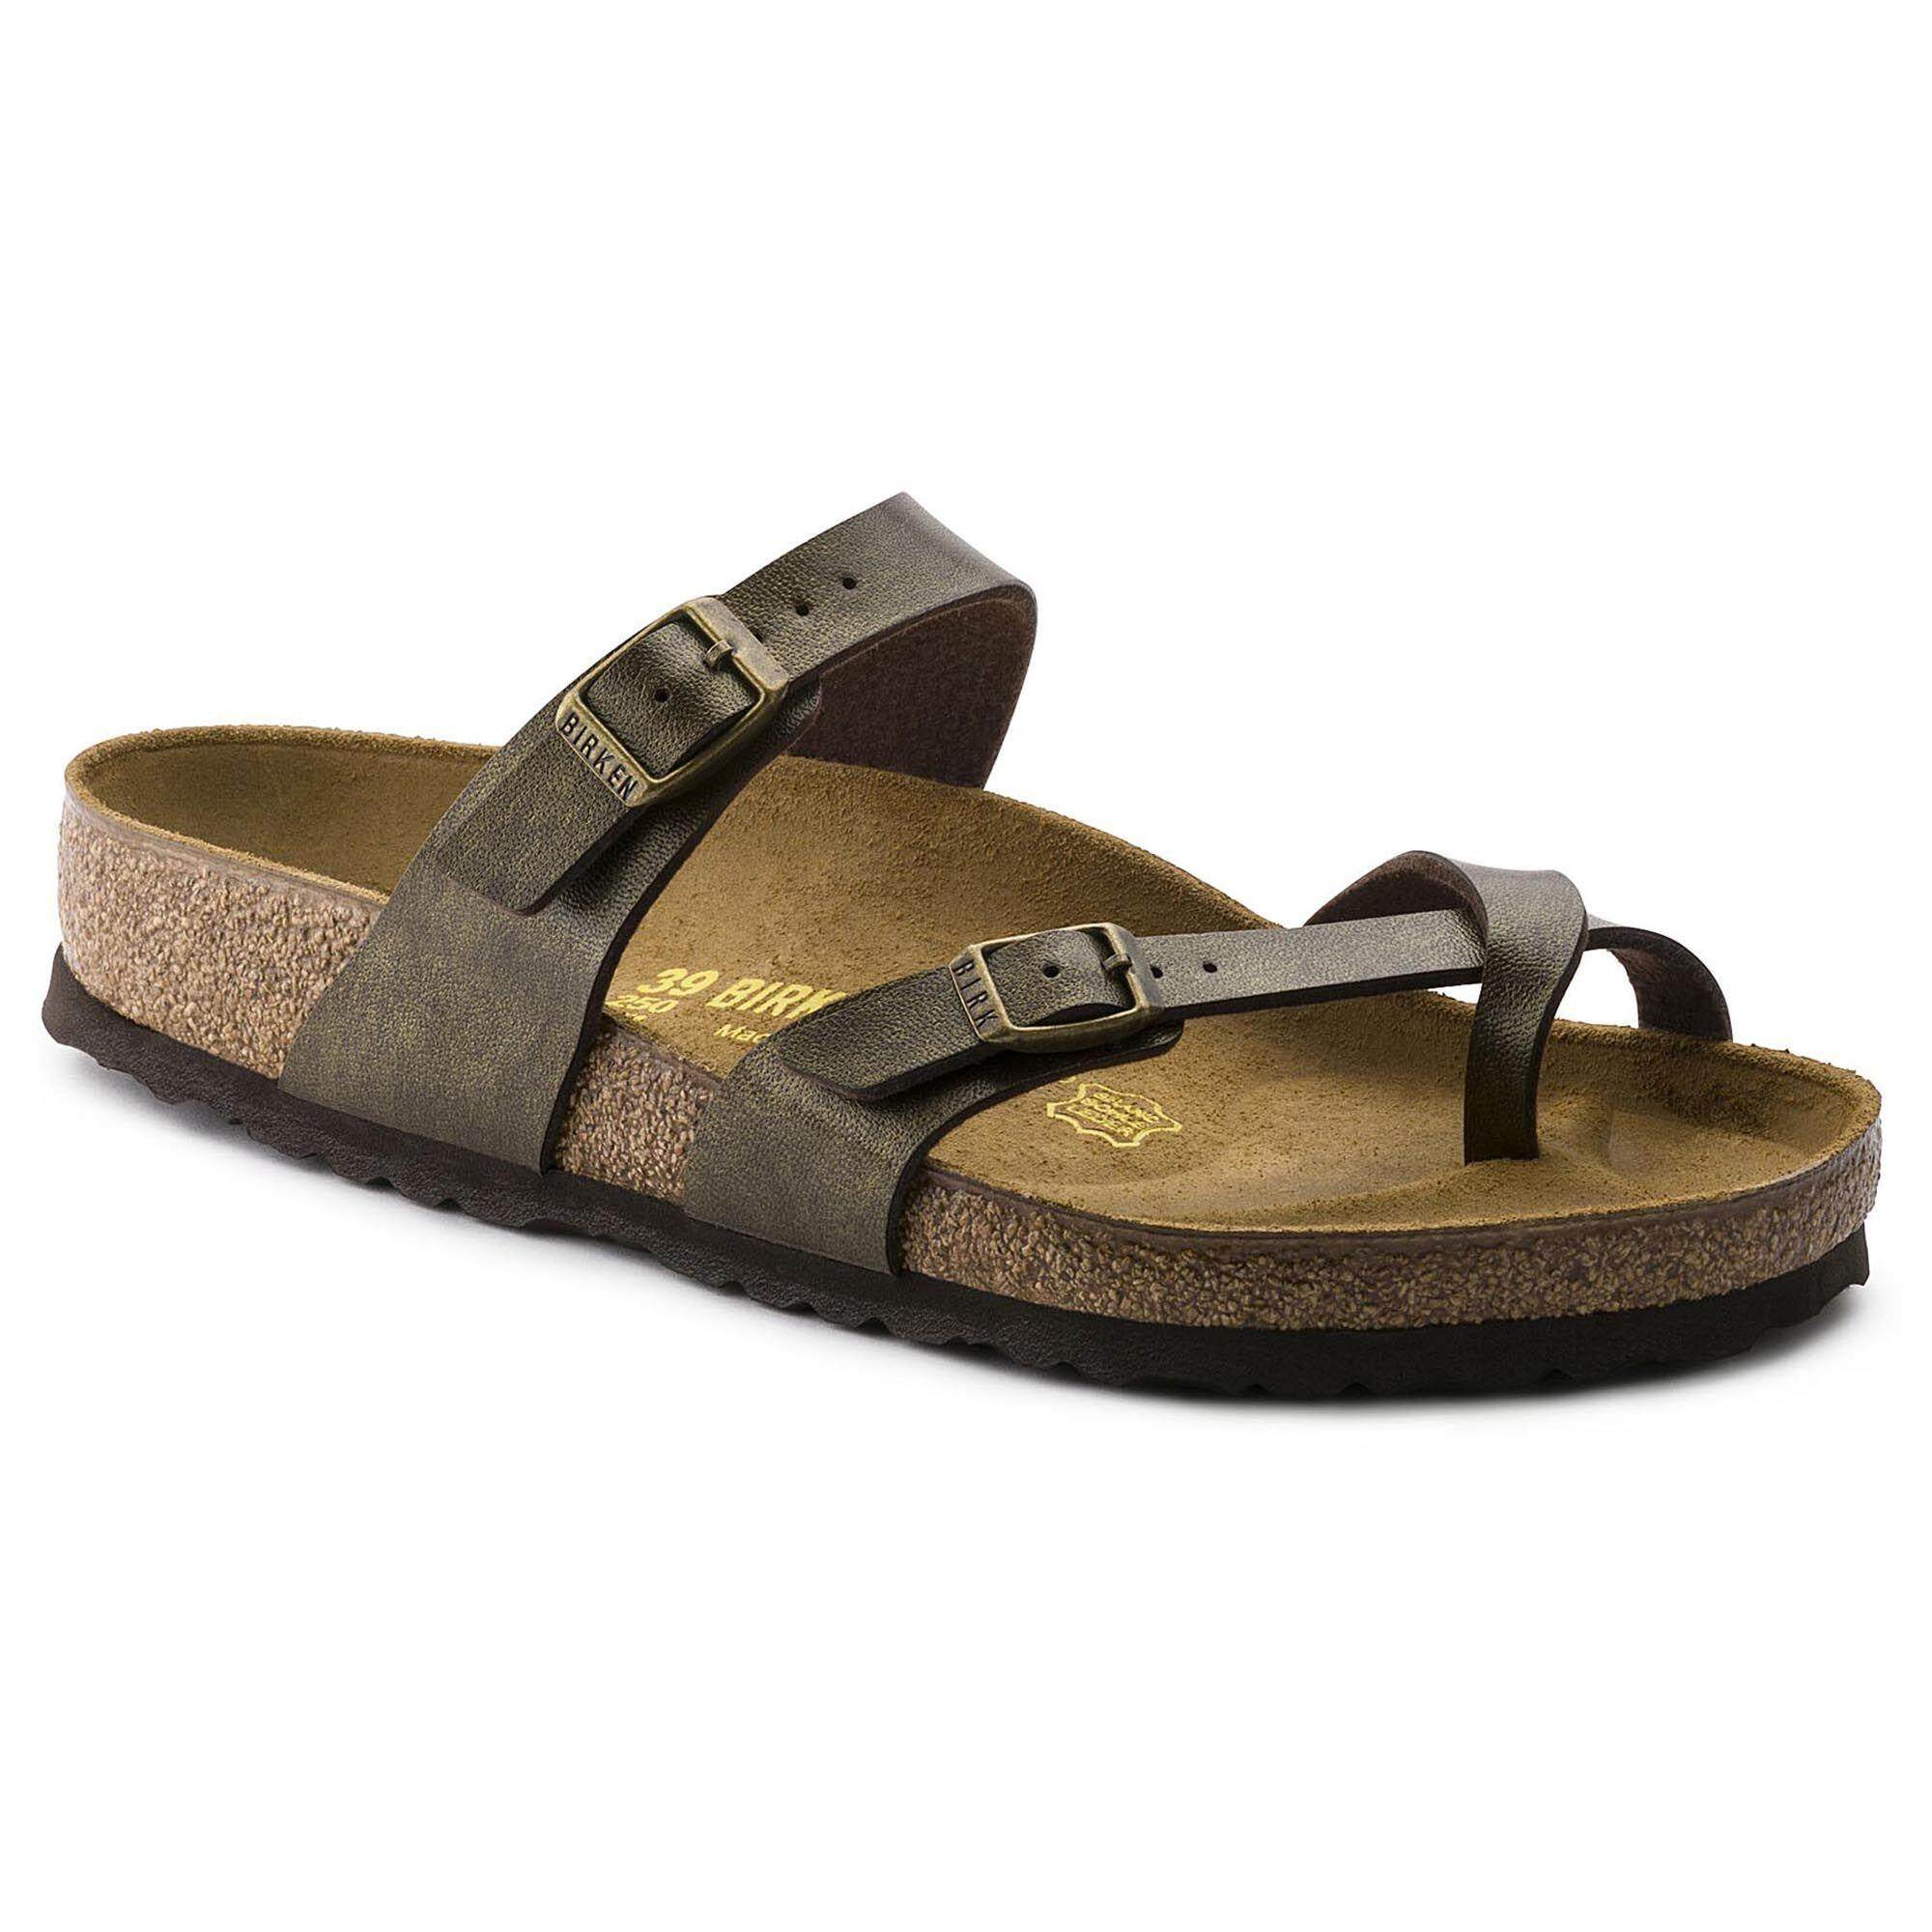 db0ff78453a0f Birkenstocks Women Sandals Women Thong Mayari Birko-Flor Golden Brown